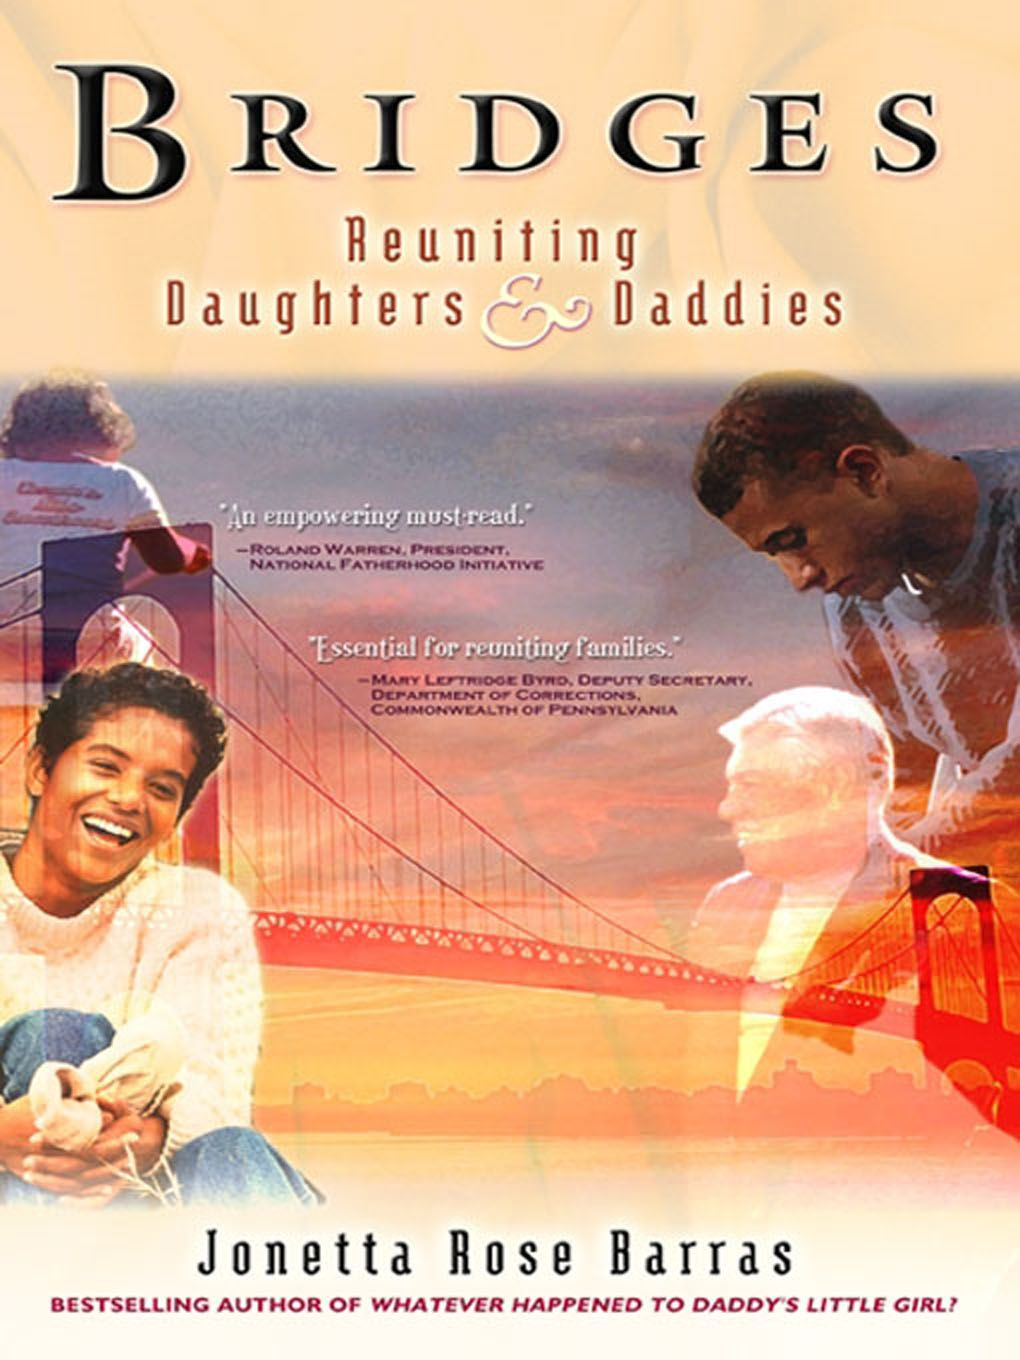 Bridges: Reuniting Daughters & Daddies